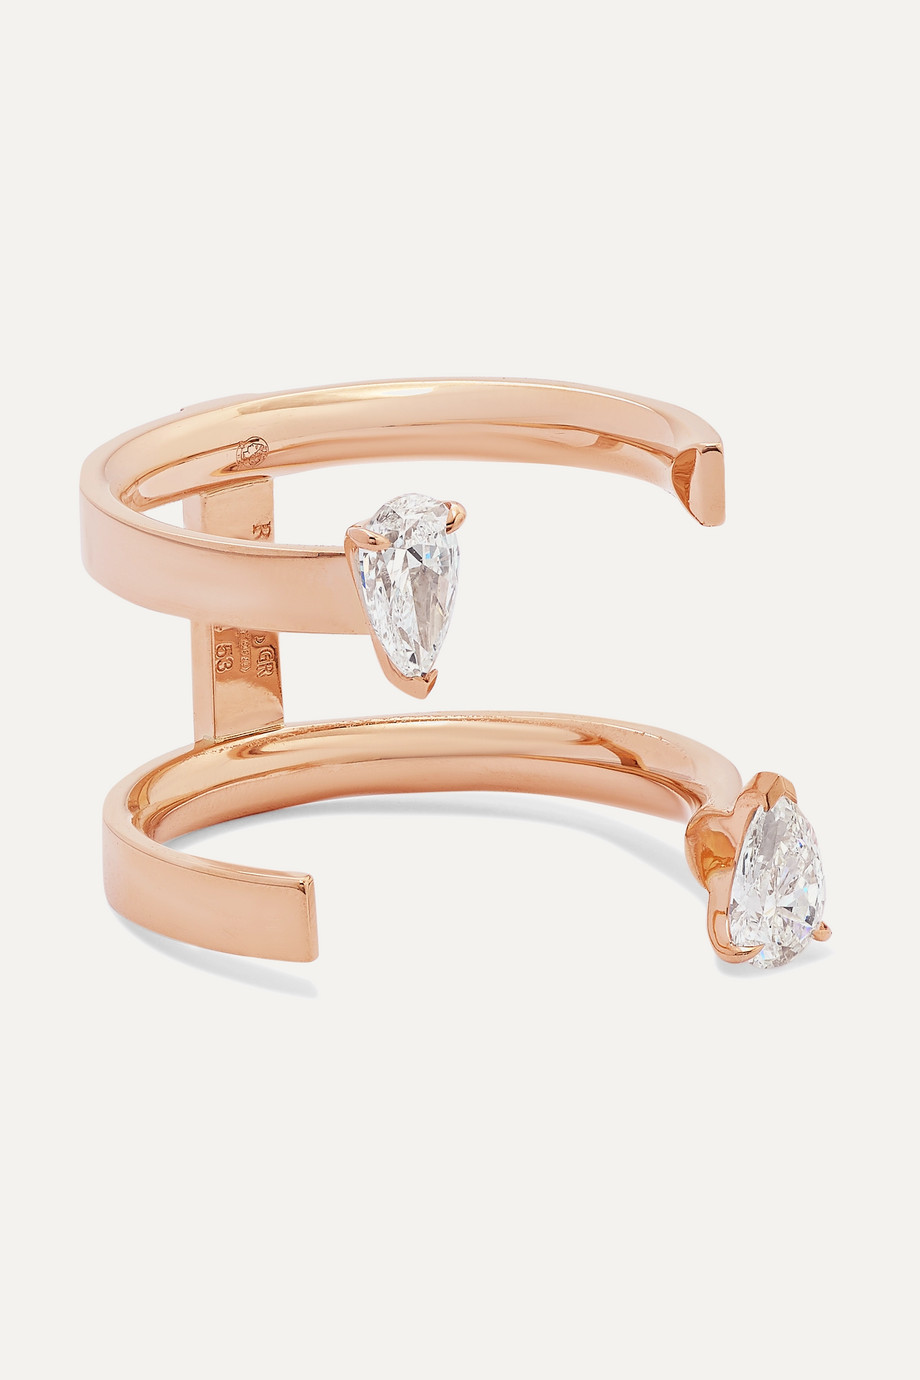 REPOSSI Serti Sur Vide 18-karat rose gold diamond ring